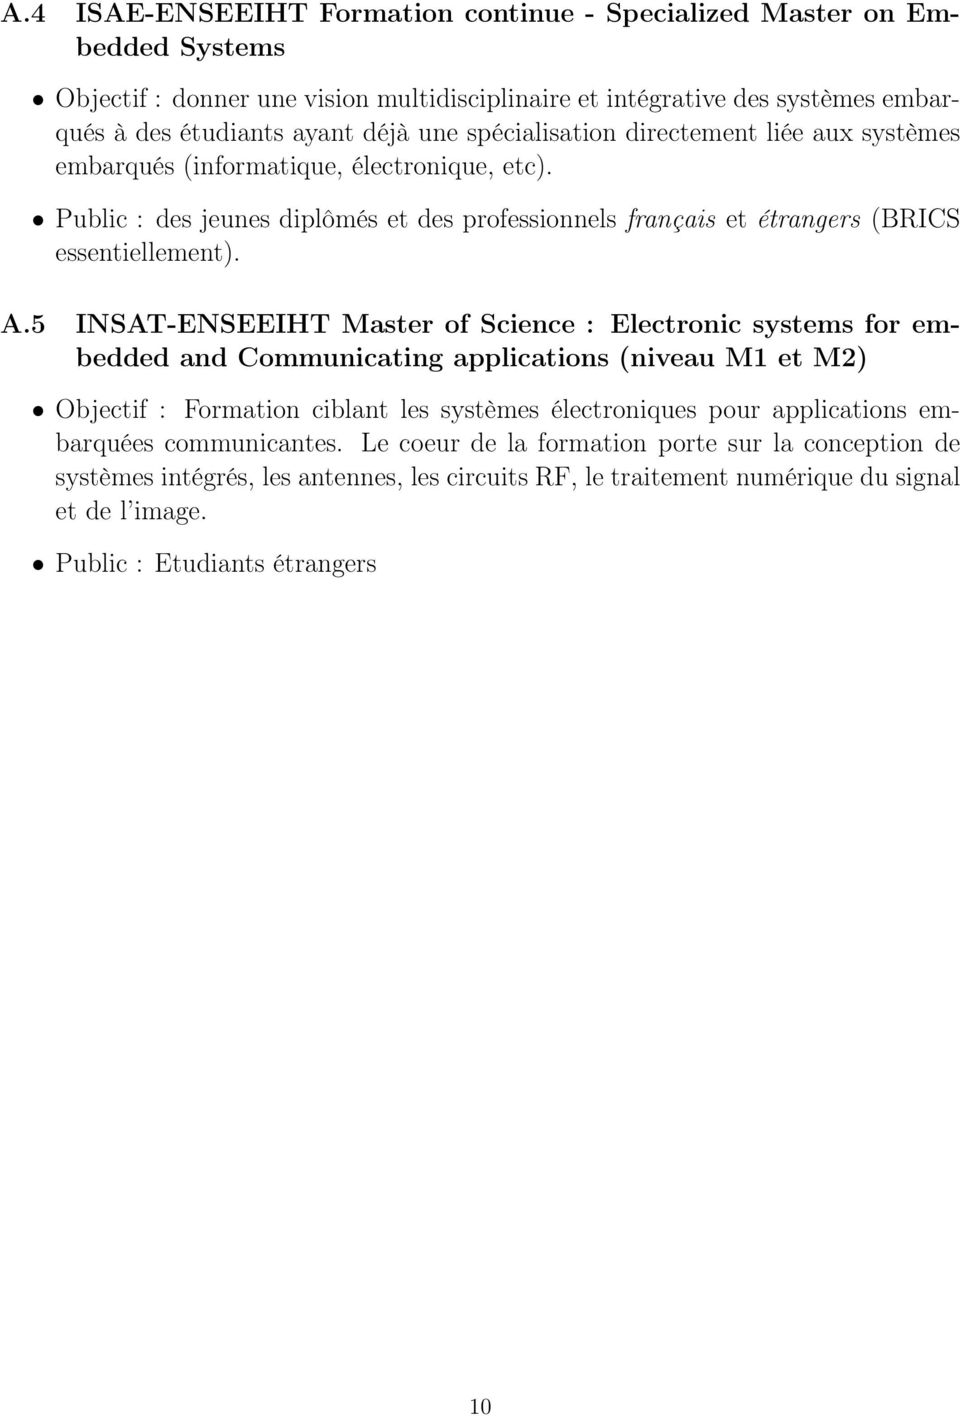 5 INSAT-ENSEEIHT Master of Science : Electronic systems for embedded and Communicating applications (niveau M1 et M2) Objectif : Formation ciblant les systèmes électroniques pour applications